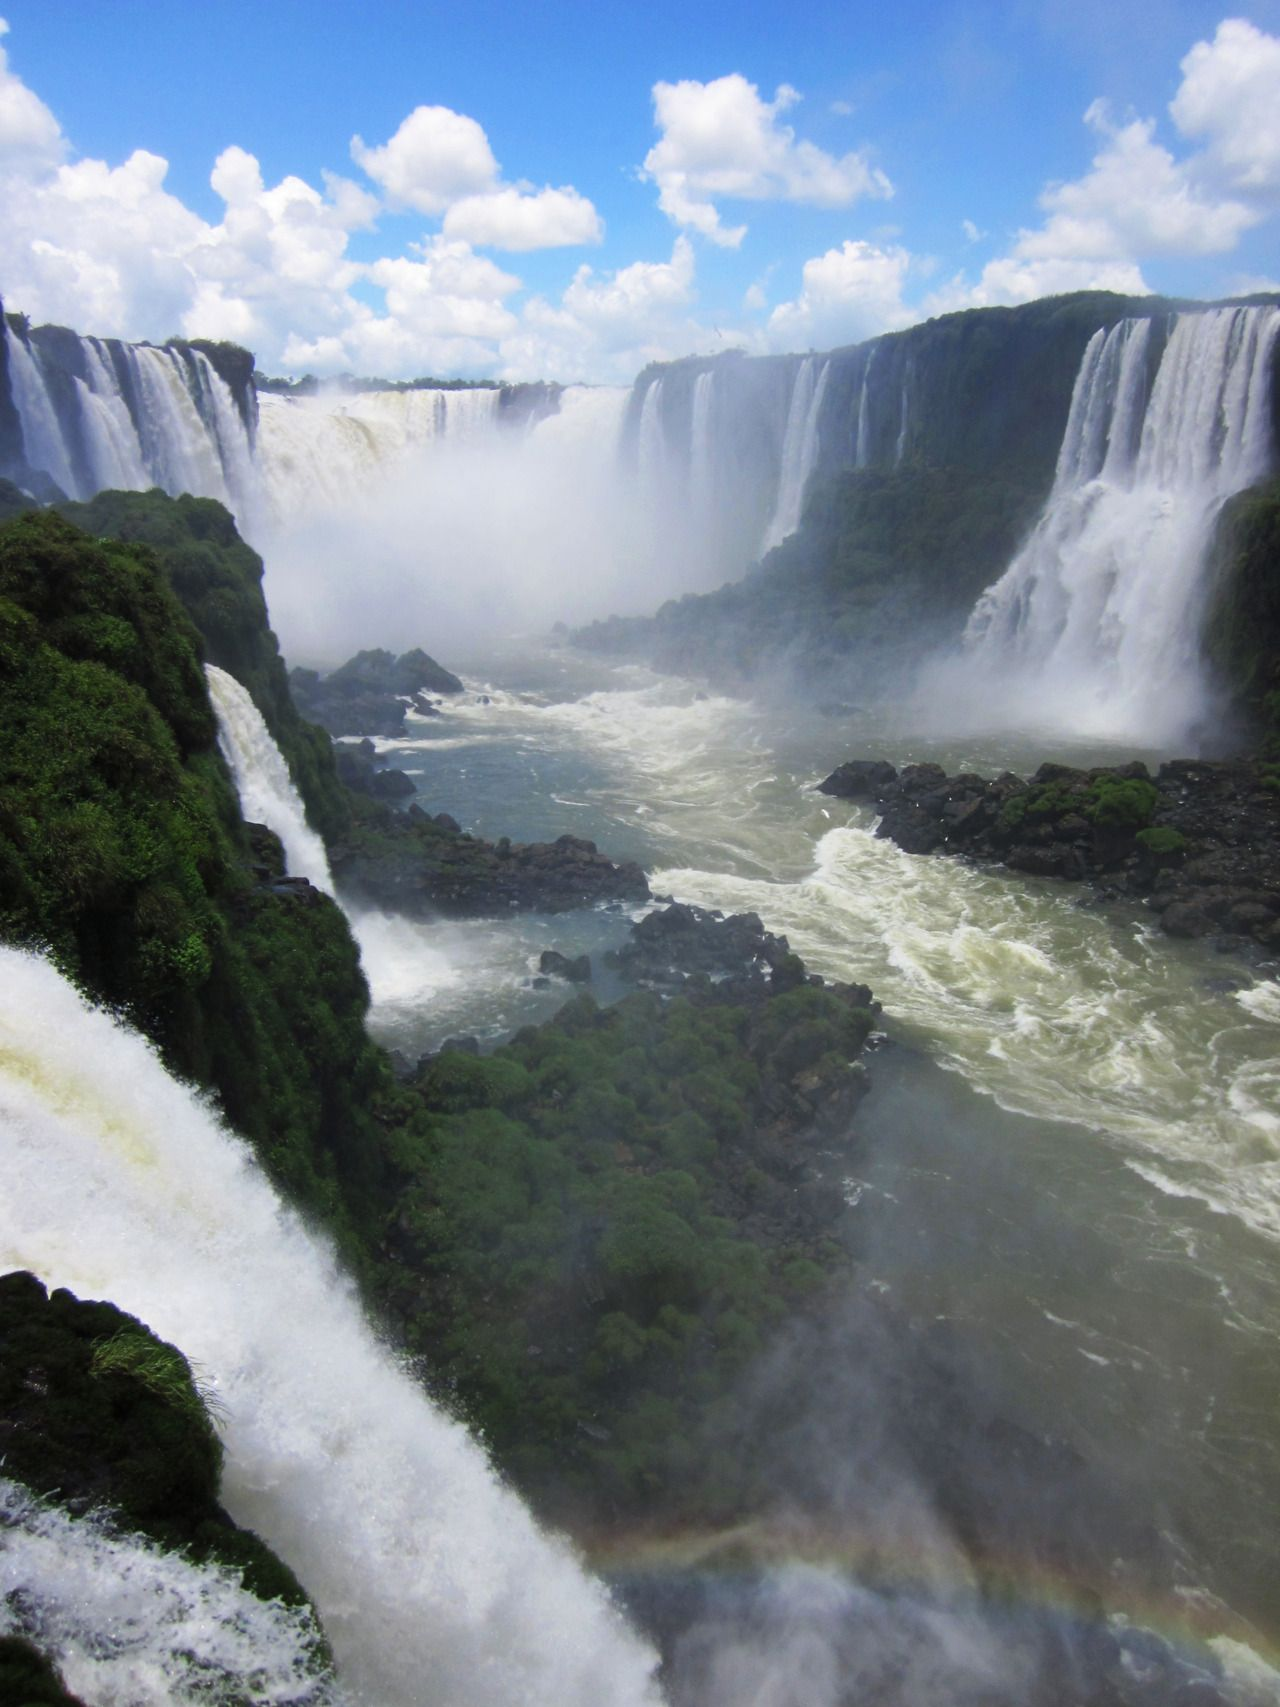 Iguazu Falls - South America. I was so close but didn't get to see this beauty!